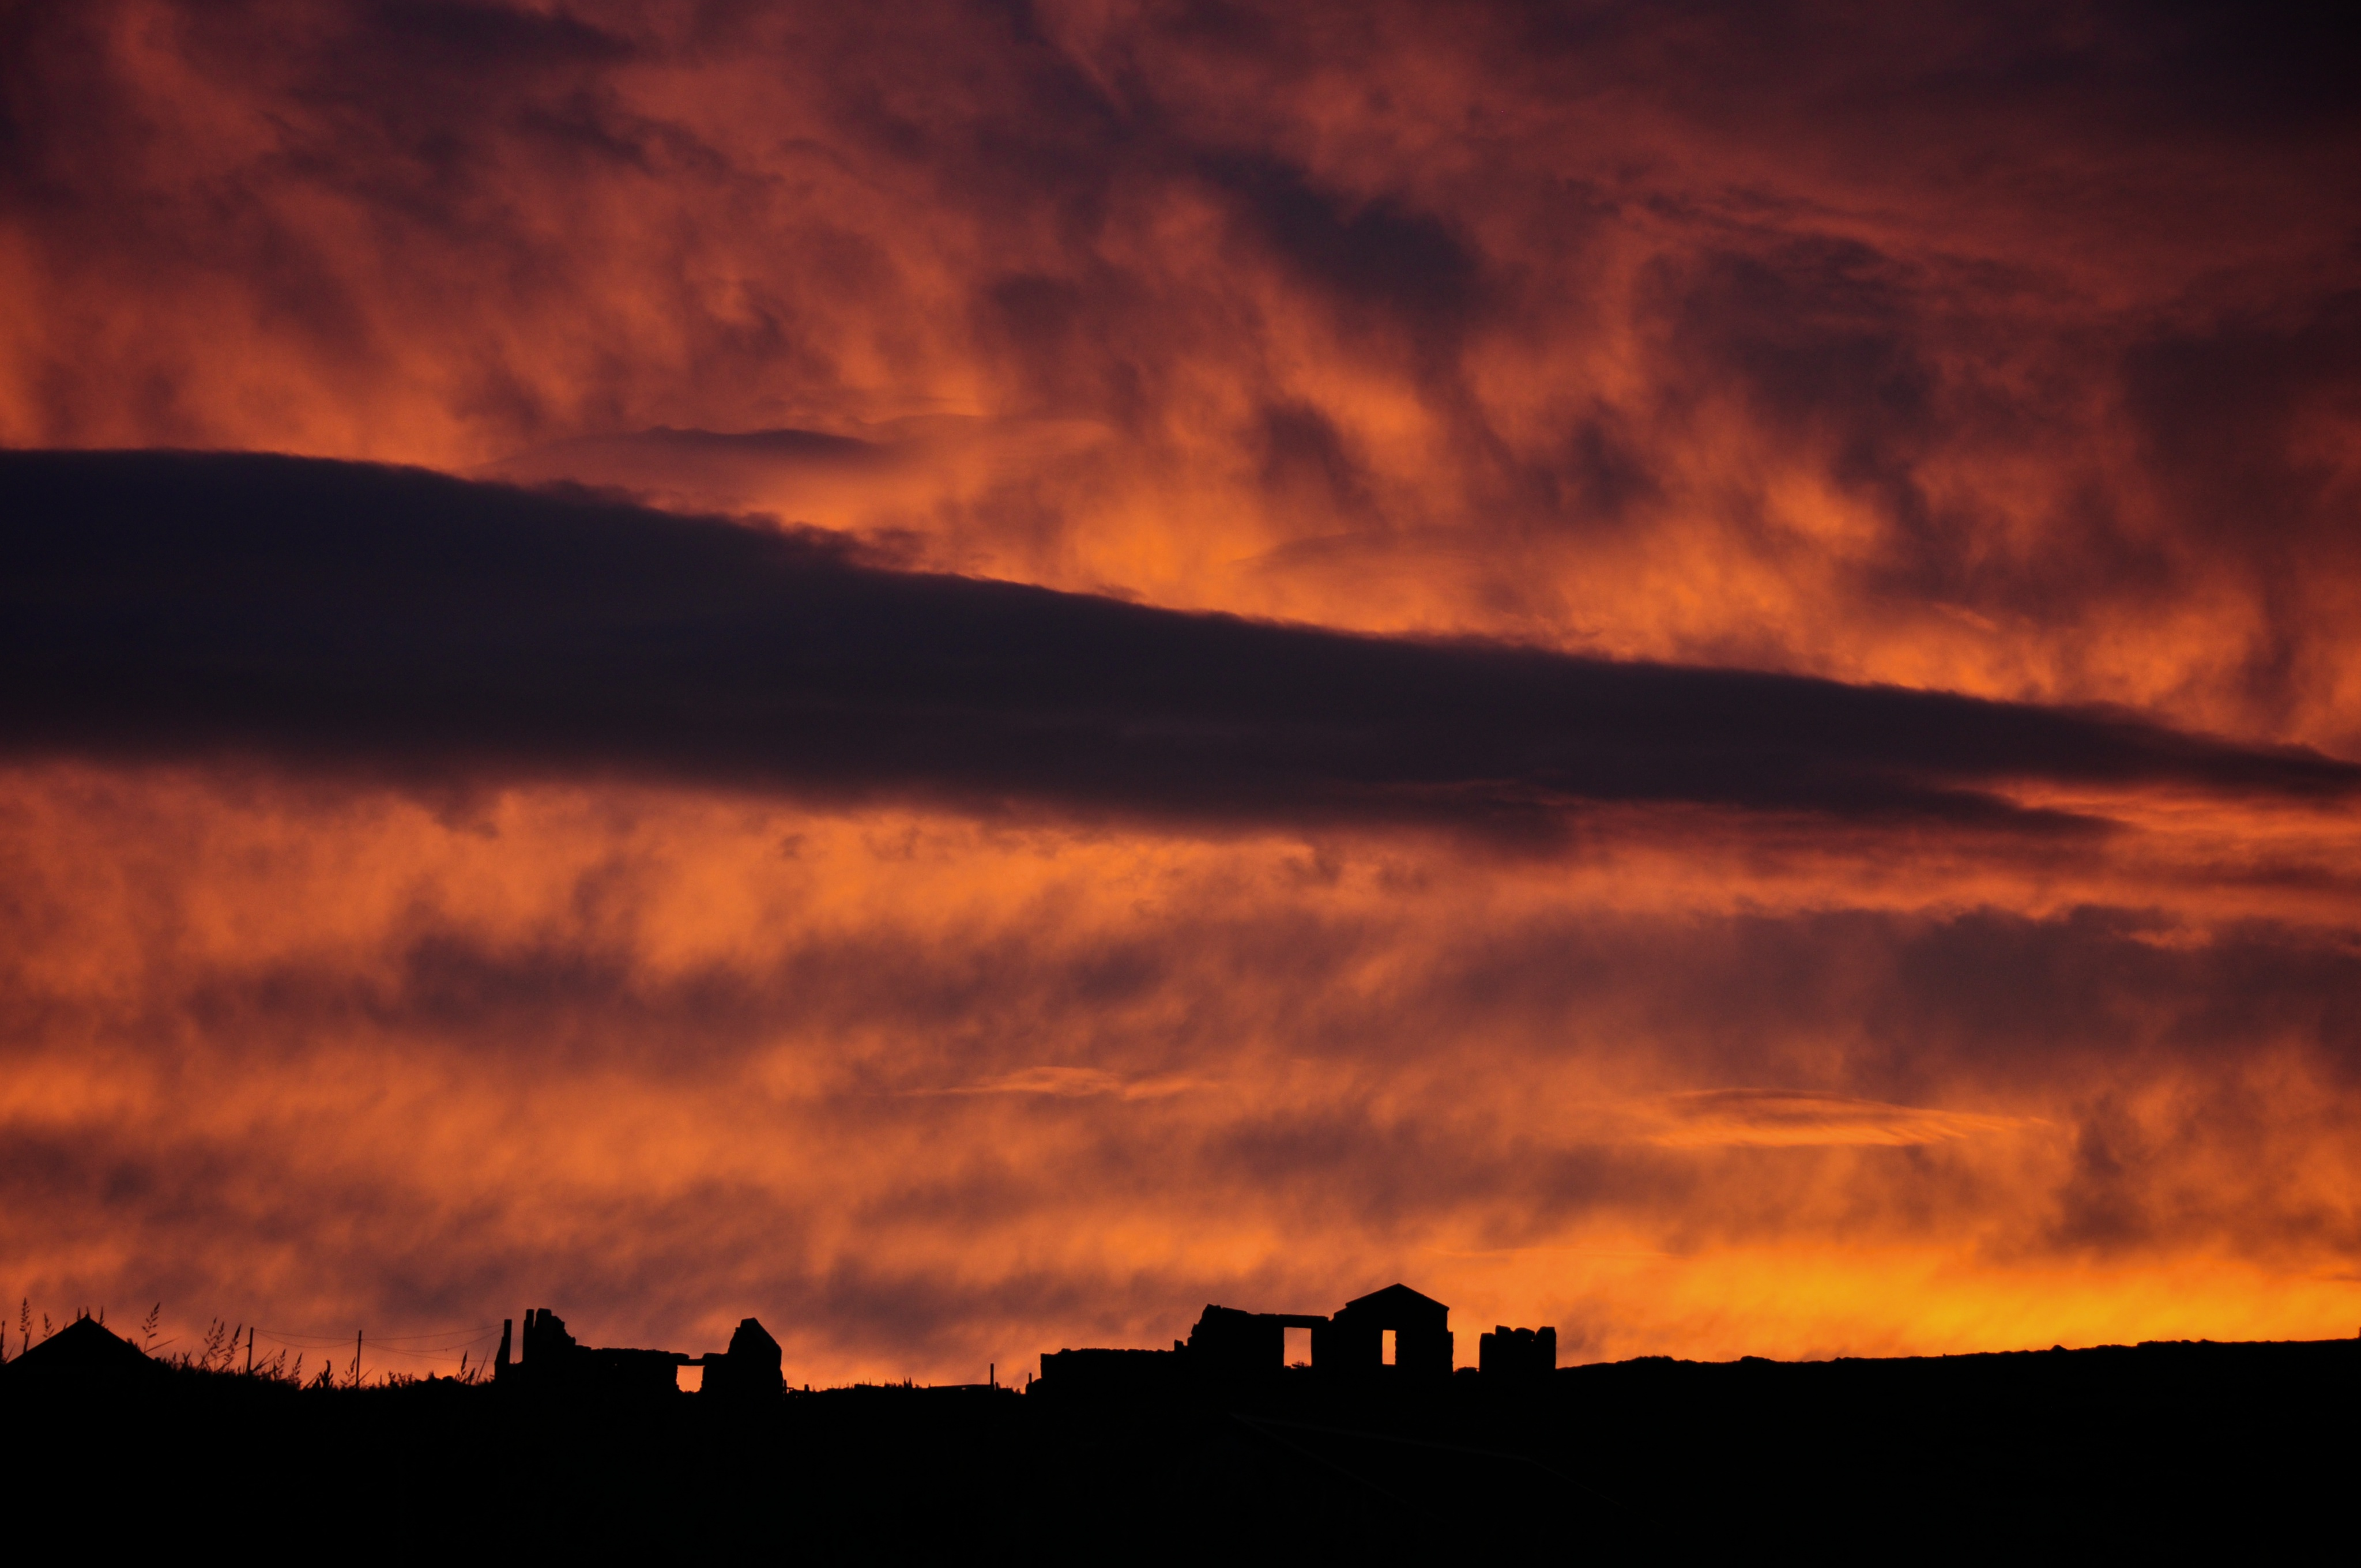 Fiery Sky over Old Croft Houses